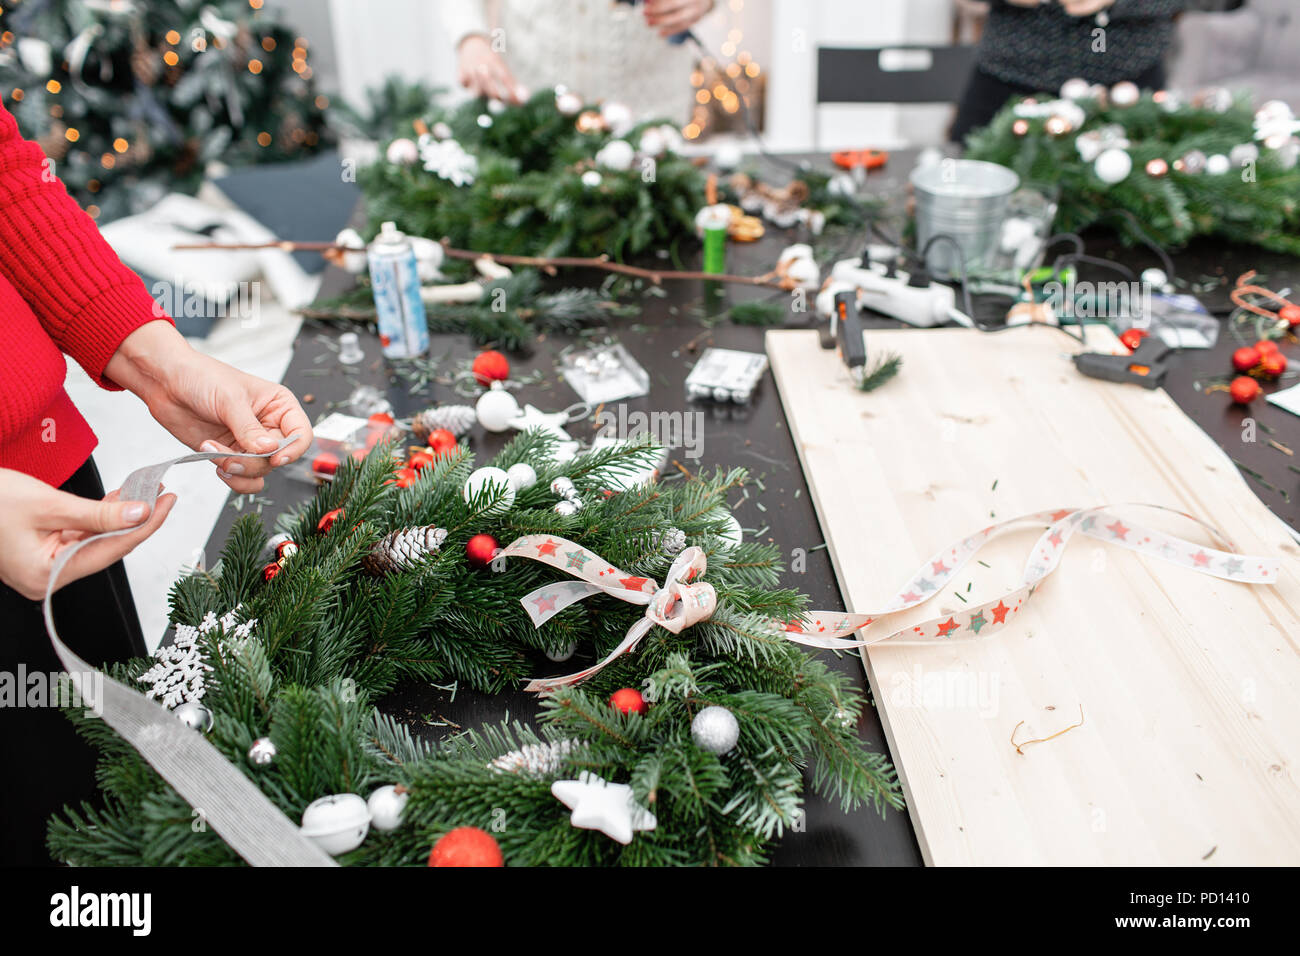 Woman tying a bow ribbon, decorated a Christmas wreath. Attaches toys and decor with glue gun. Hands close-up. Master class on making decorative ornaments. Stock Photo